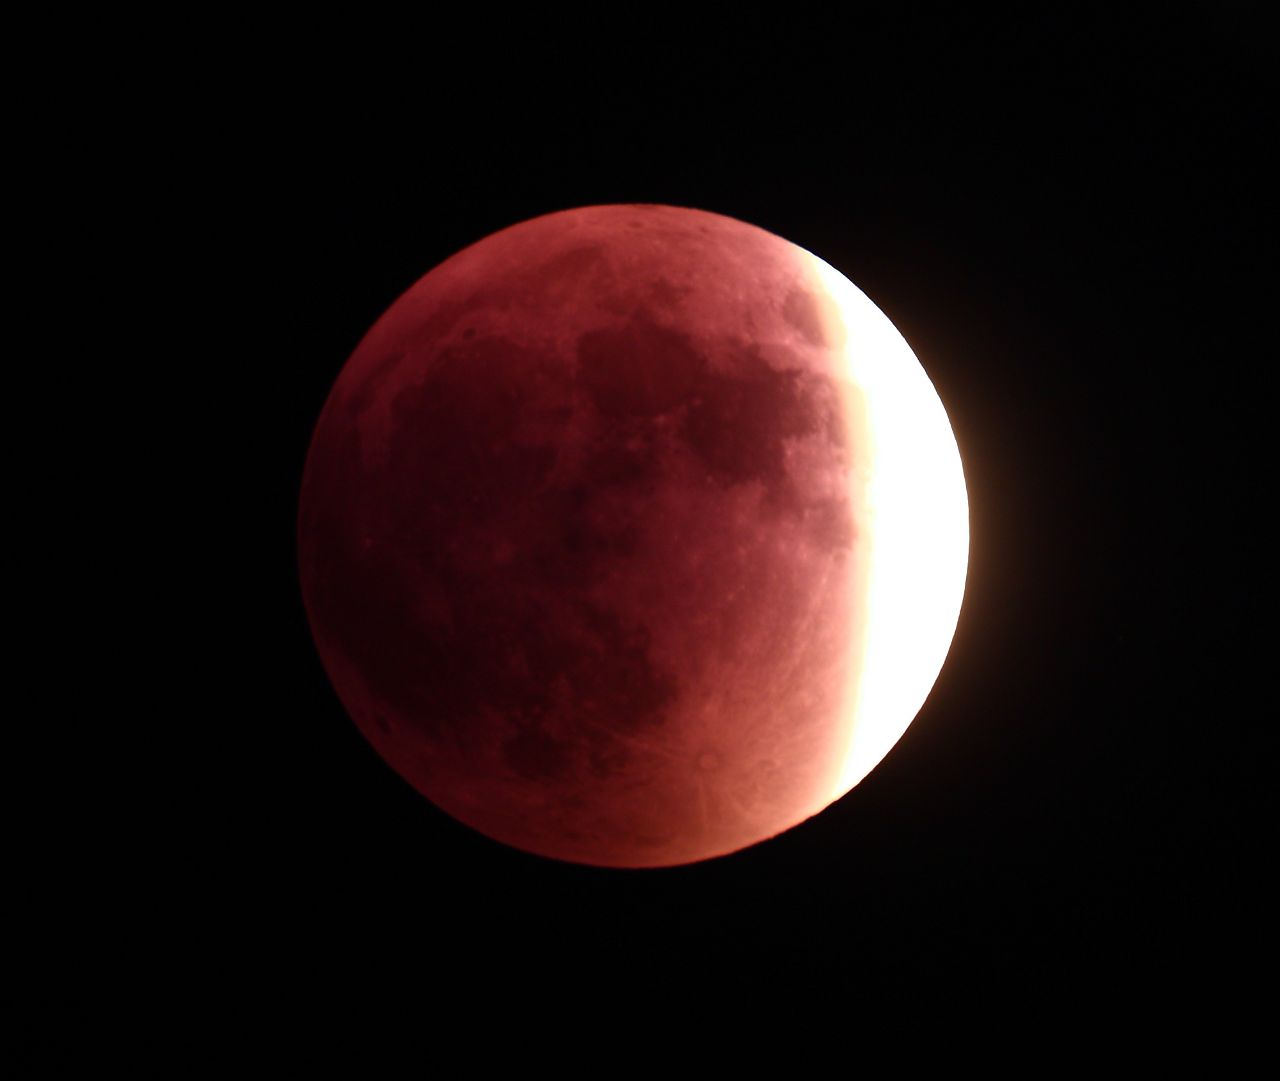 Colouring sheets of the lunar eclipse - The Eclipse Progresses On Sept 27th 2015 6 20 Pm